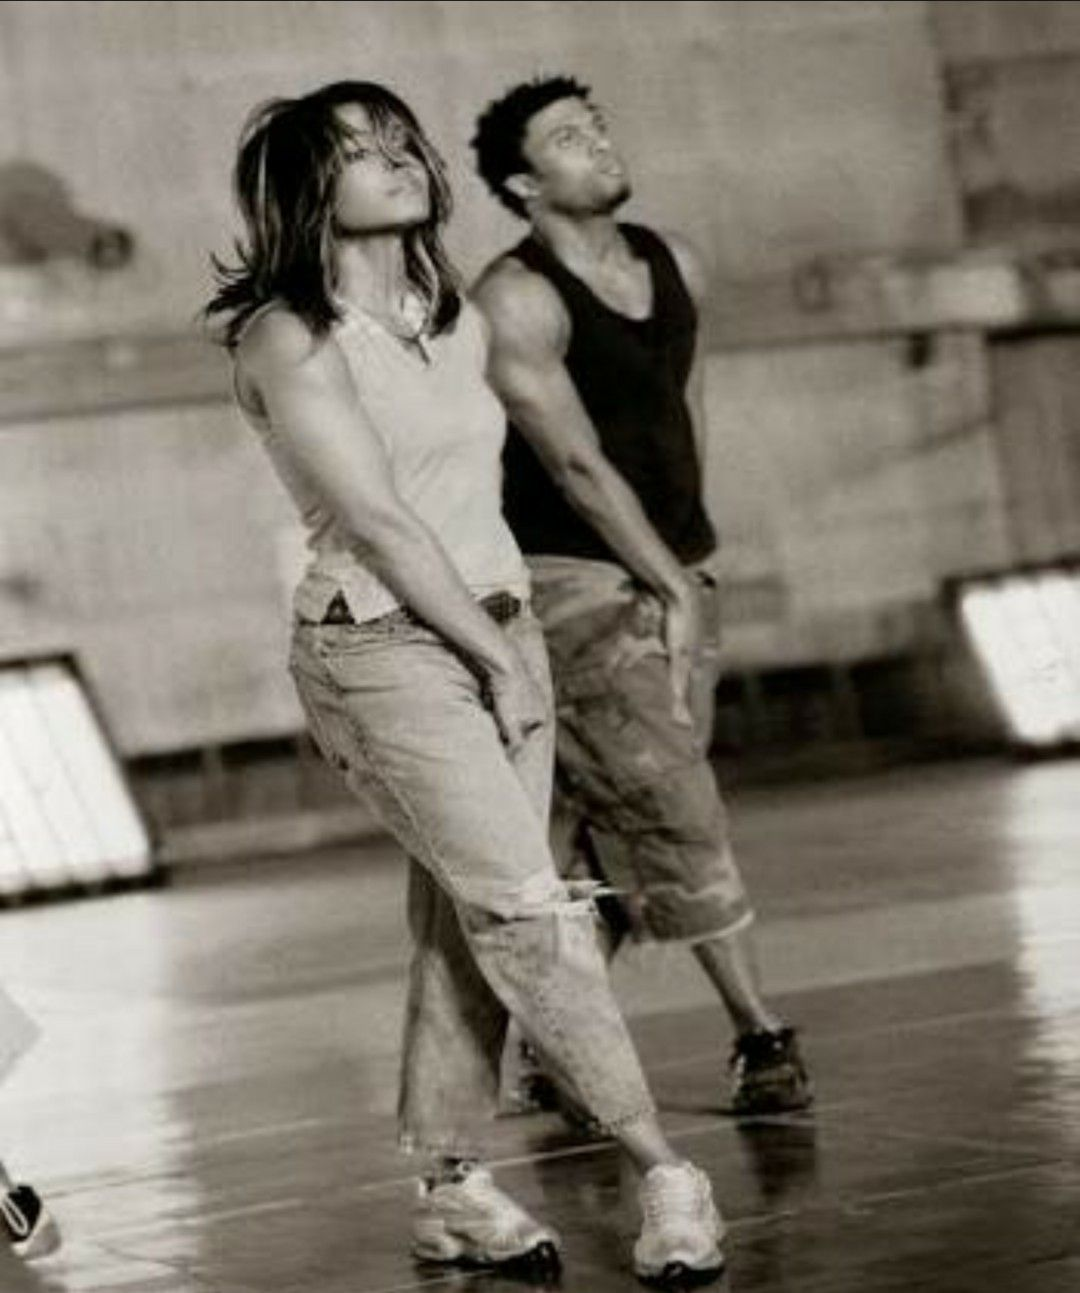 Janet Jackson shows off post-baby figure in concert